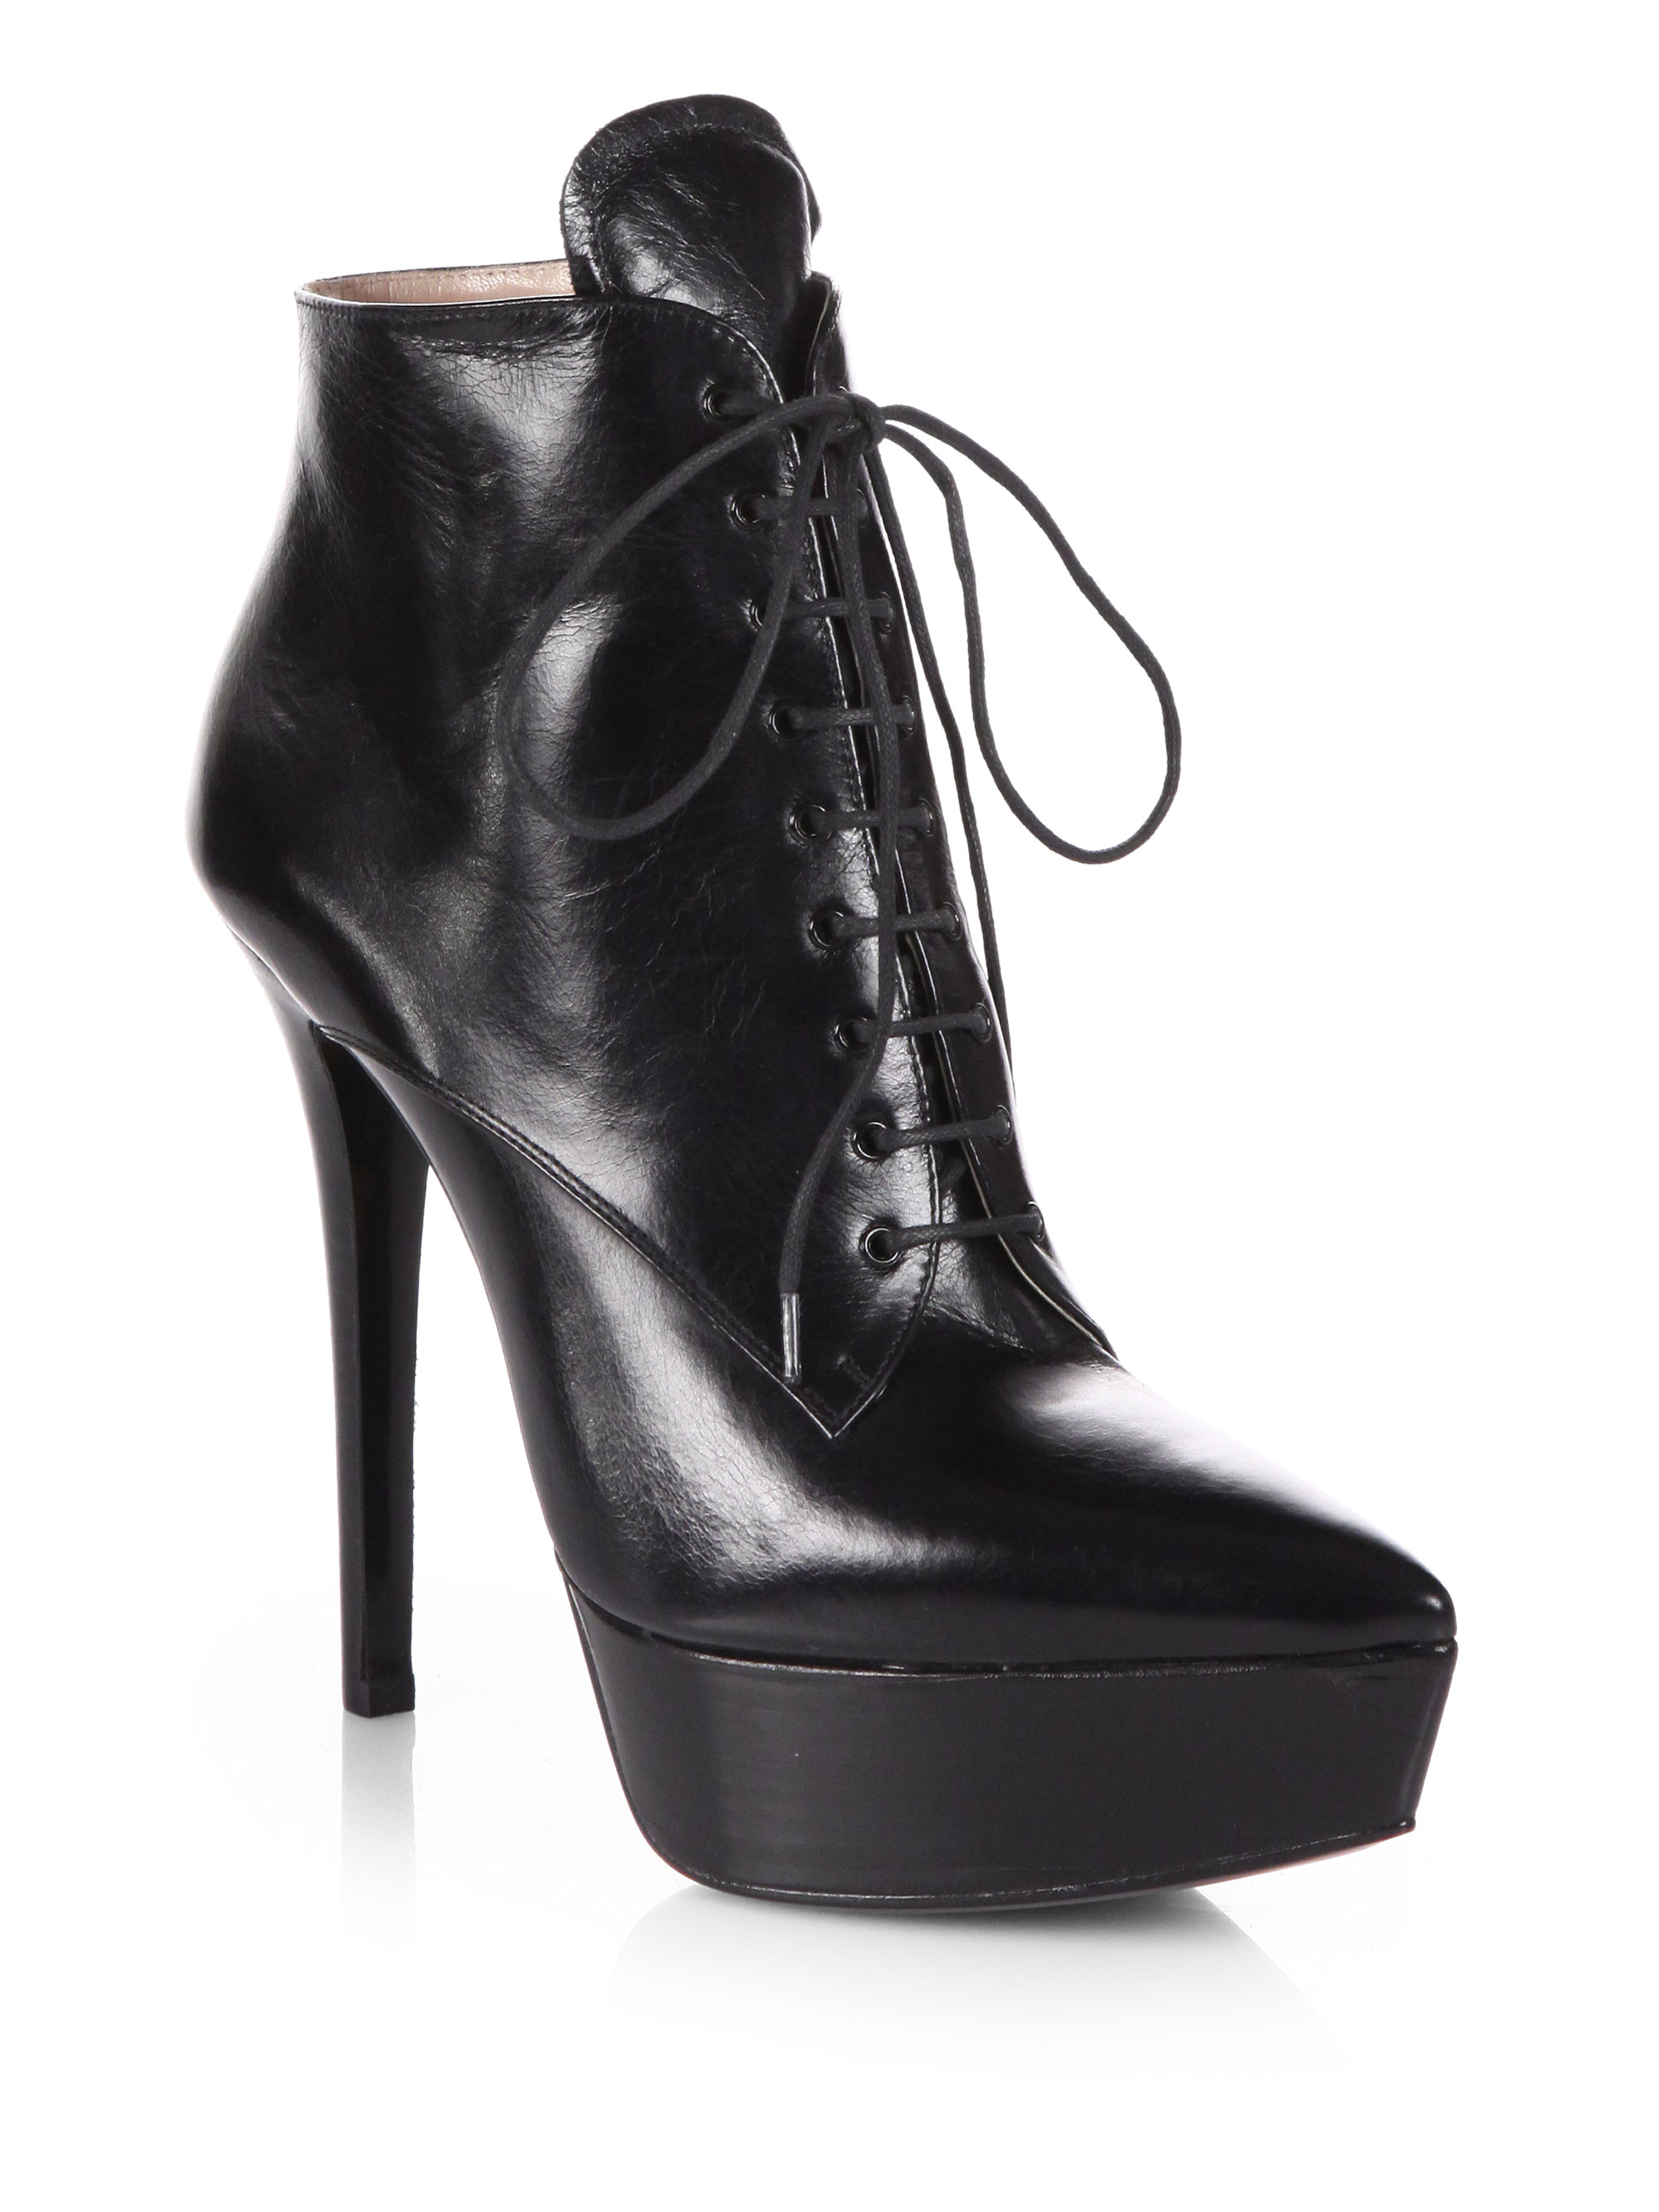 Prada Leather Laceup Platform Ankle Boots in Black (nero-black) | Lyst